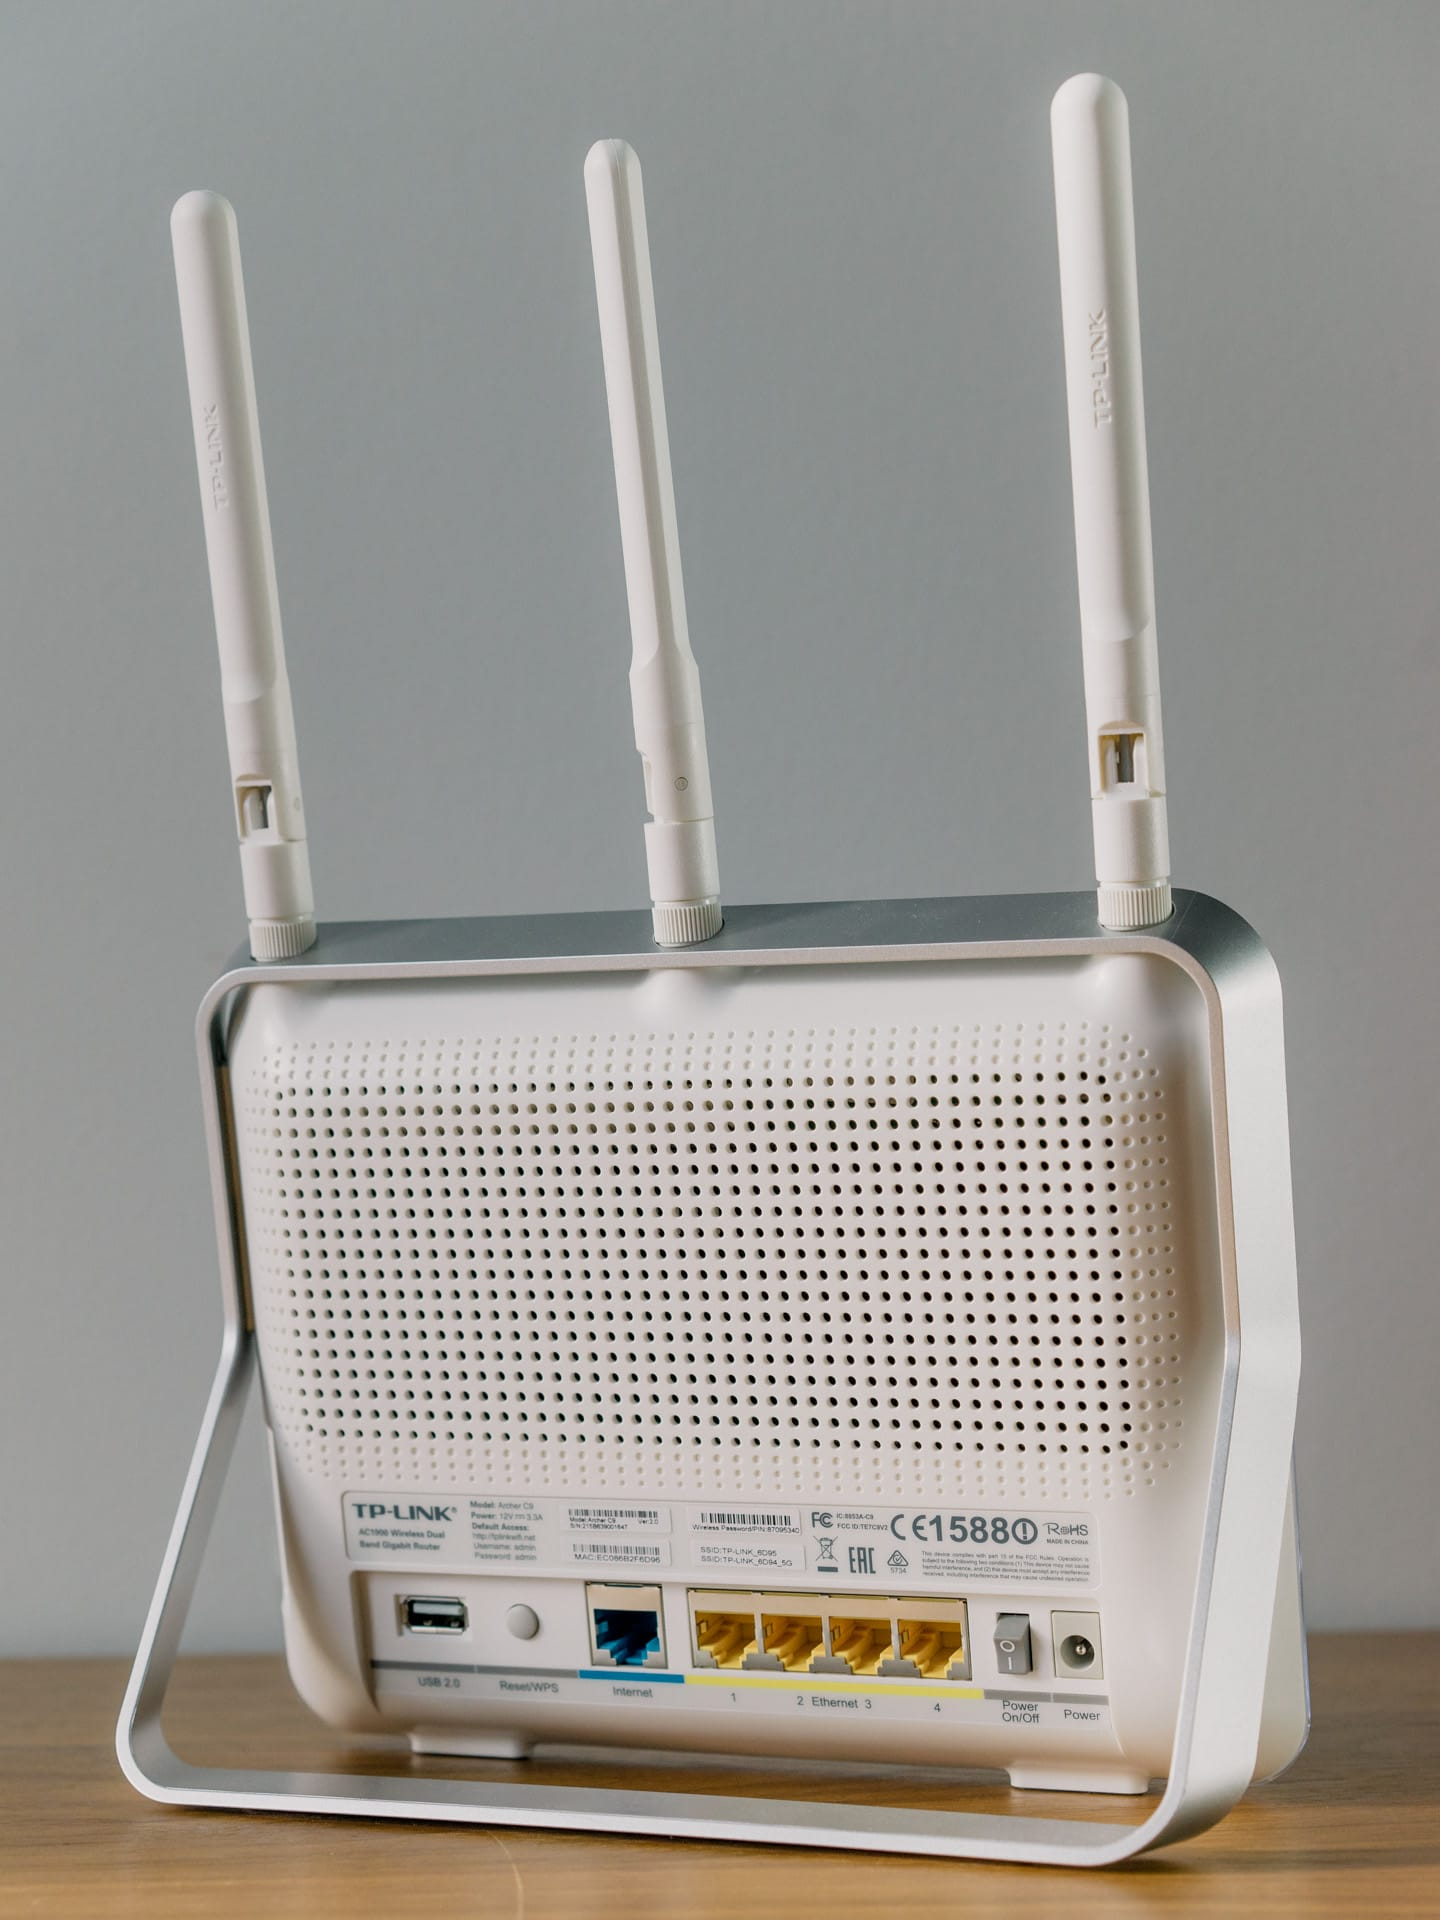 A Look at the TP-Link Archer C9 Router and TP-Link AC1200 WiFi Range ...